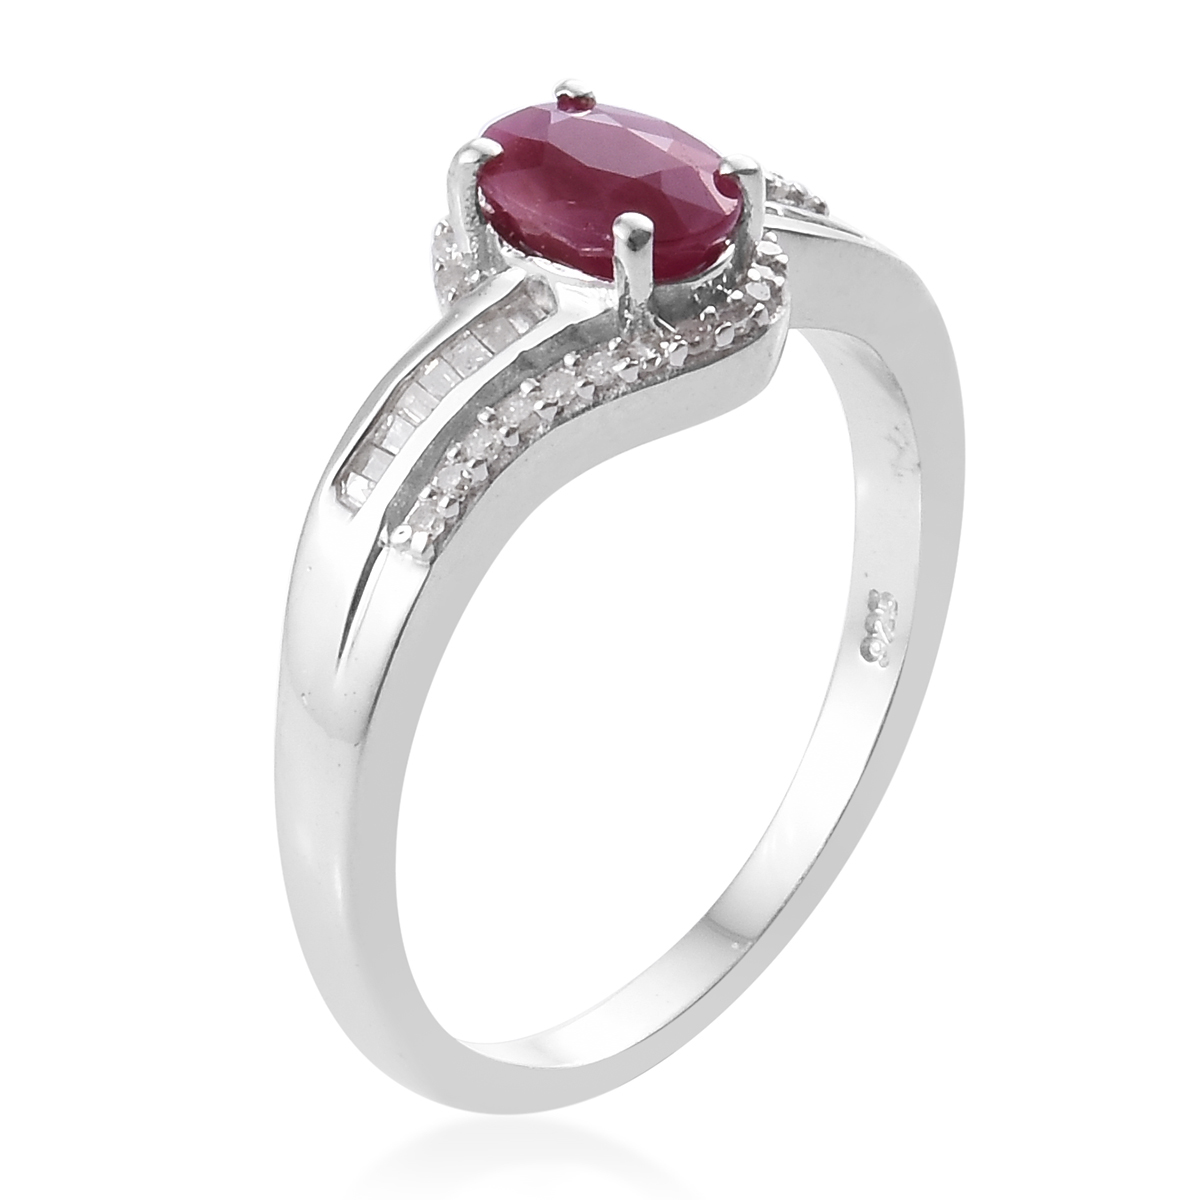 Burmese Ruby, Diamond (0.22 ct) Ring in Platinum Over Sterling Silver (Size 8.0) 1.27 ctw